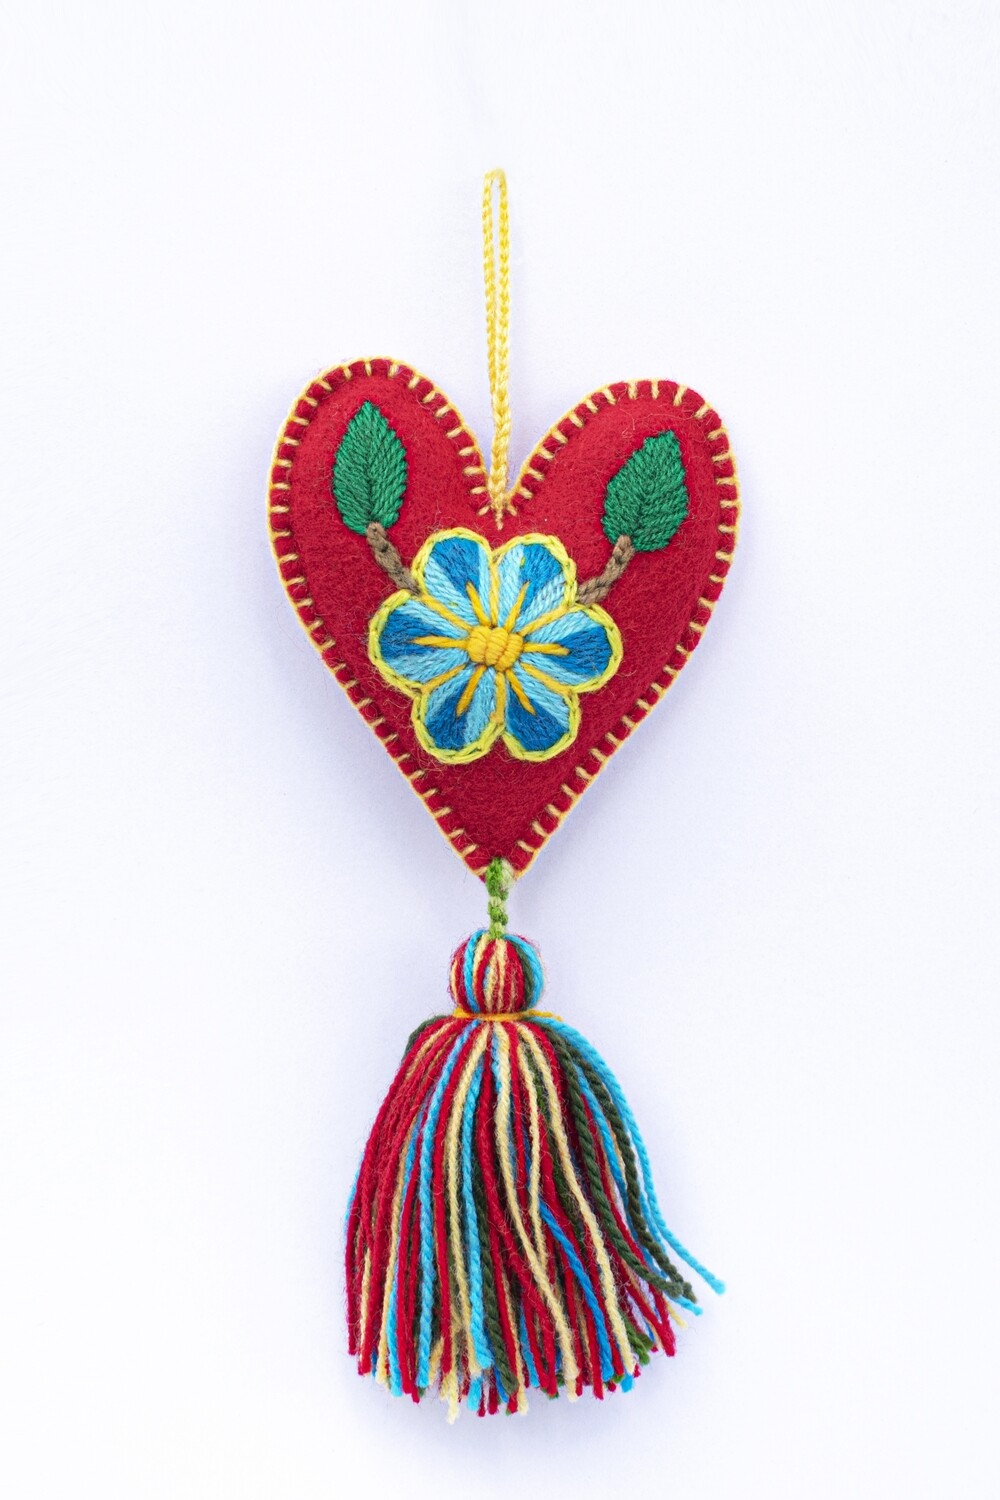 Small Heart Ornament - Red